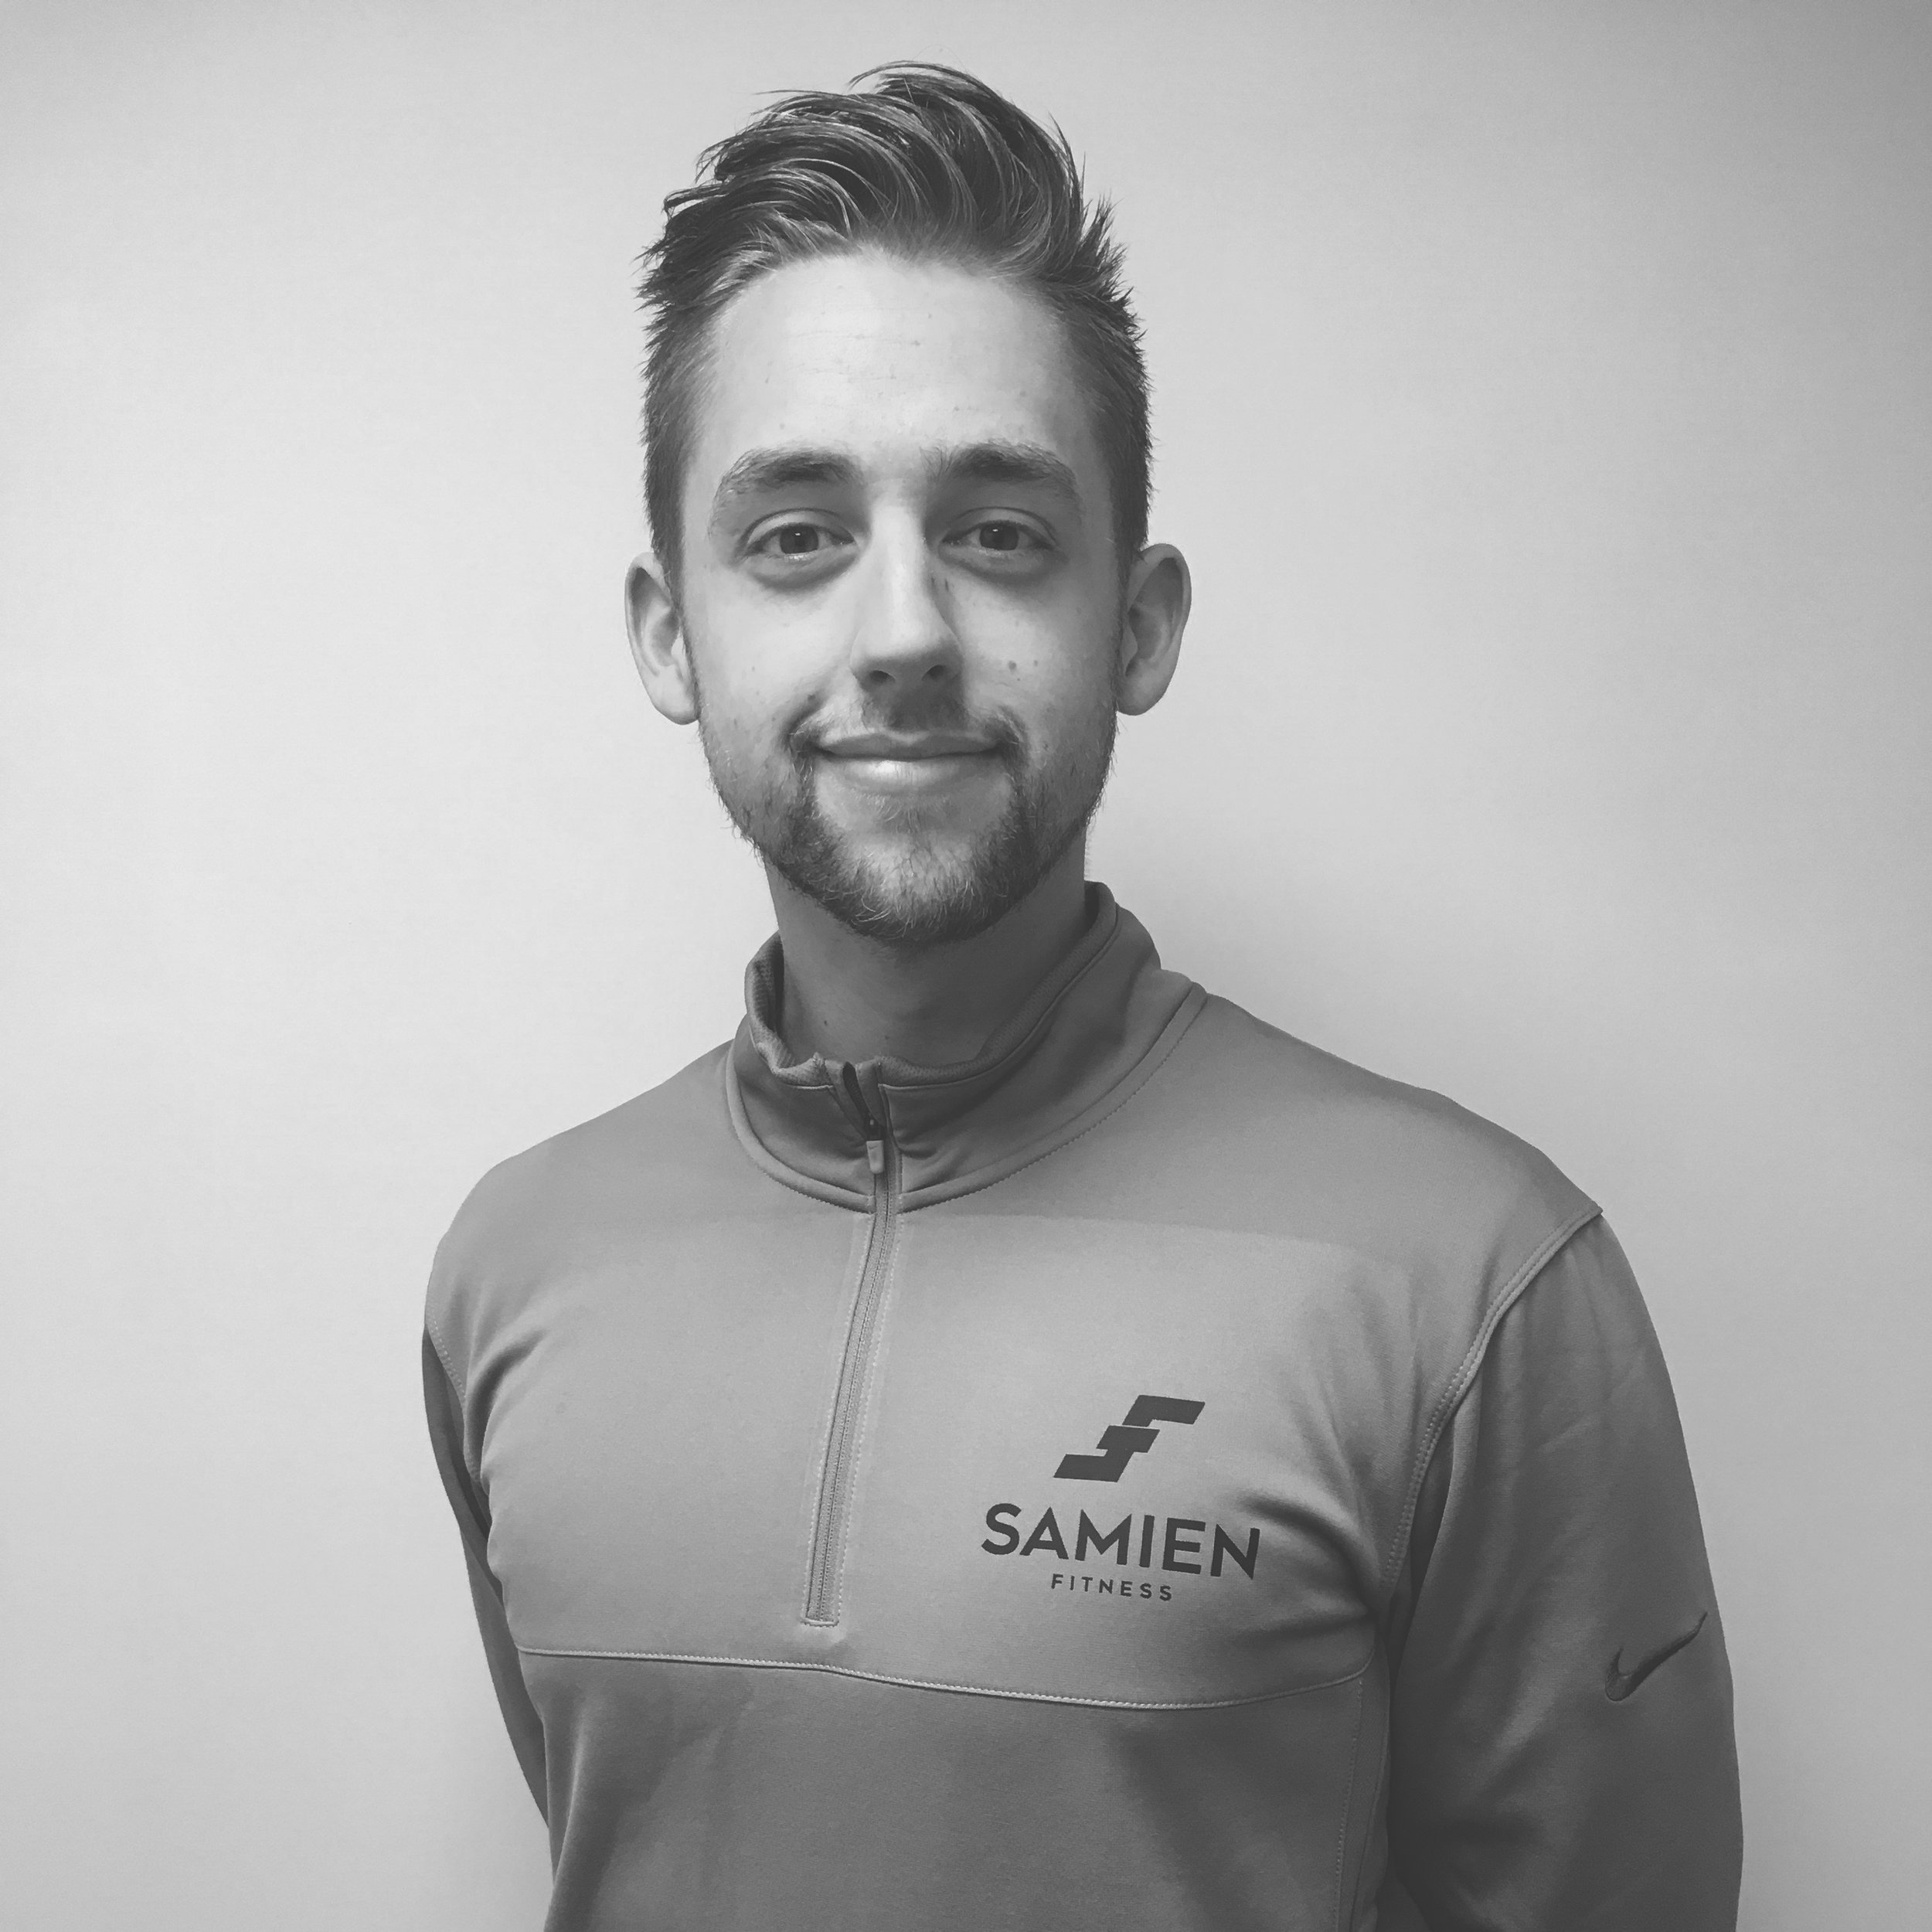 Sam Duckworth - Level 3 Personal TrainerStrength & Conditioning CoachPre & Post NatalGP ReferralMember of the Advanced Coaching AcademyCertificate in Sports & Exercise Nutrition